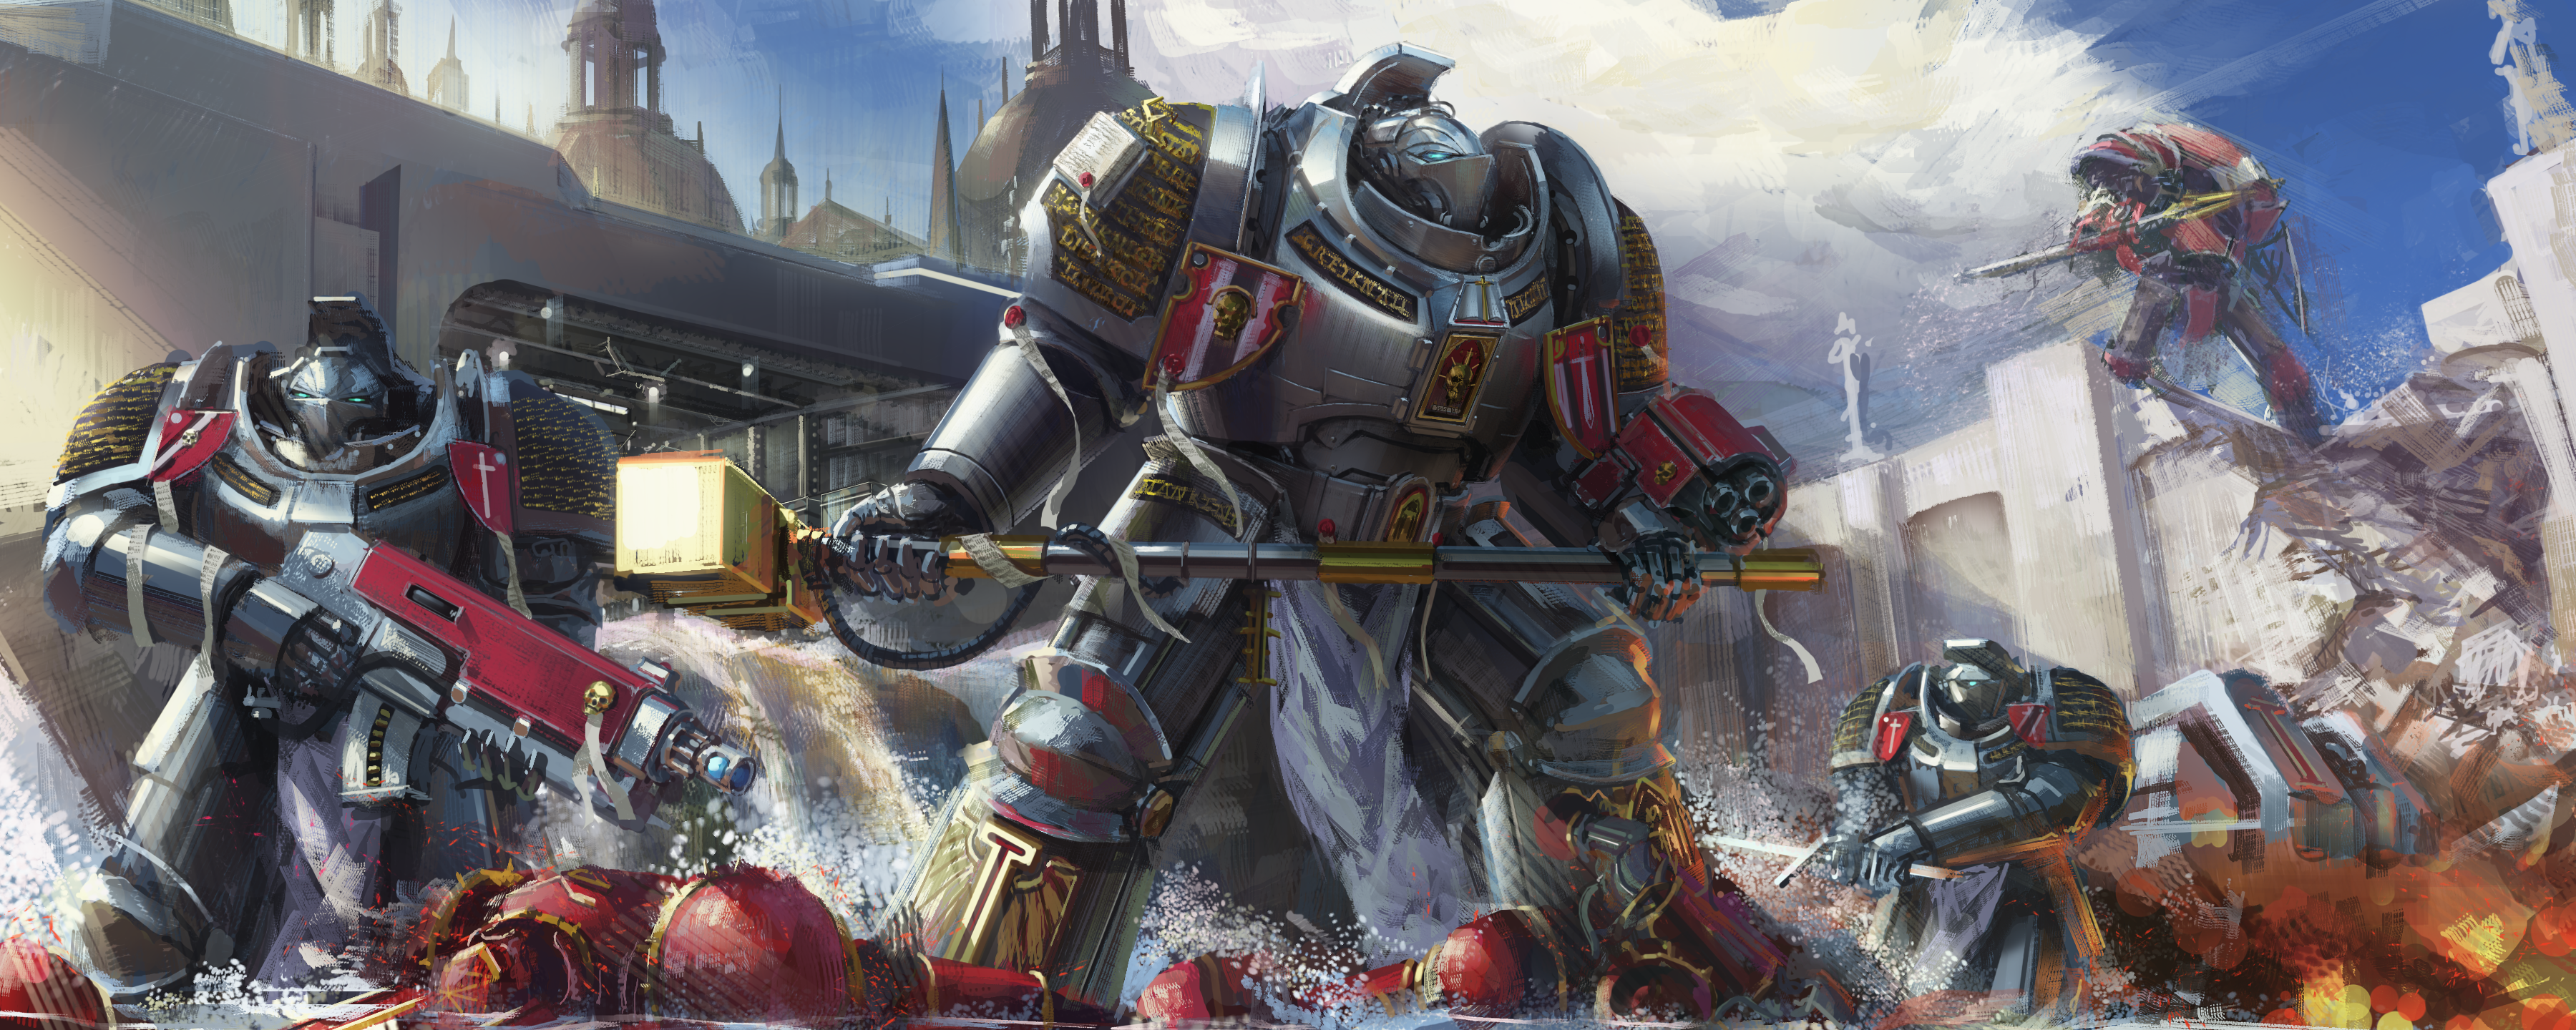 Warhammer 40k Backgrounds Pictures Images